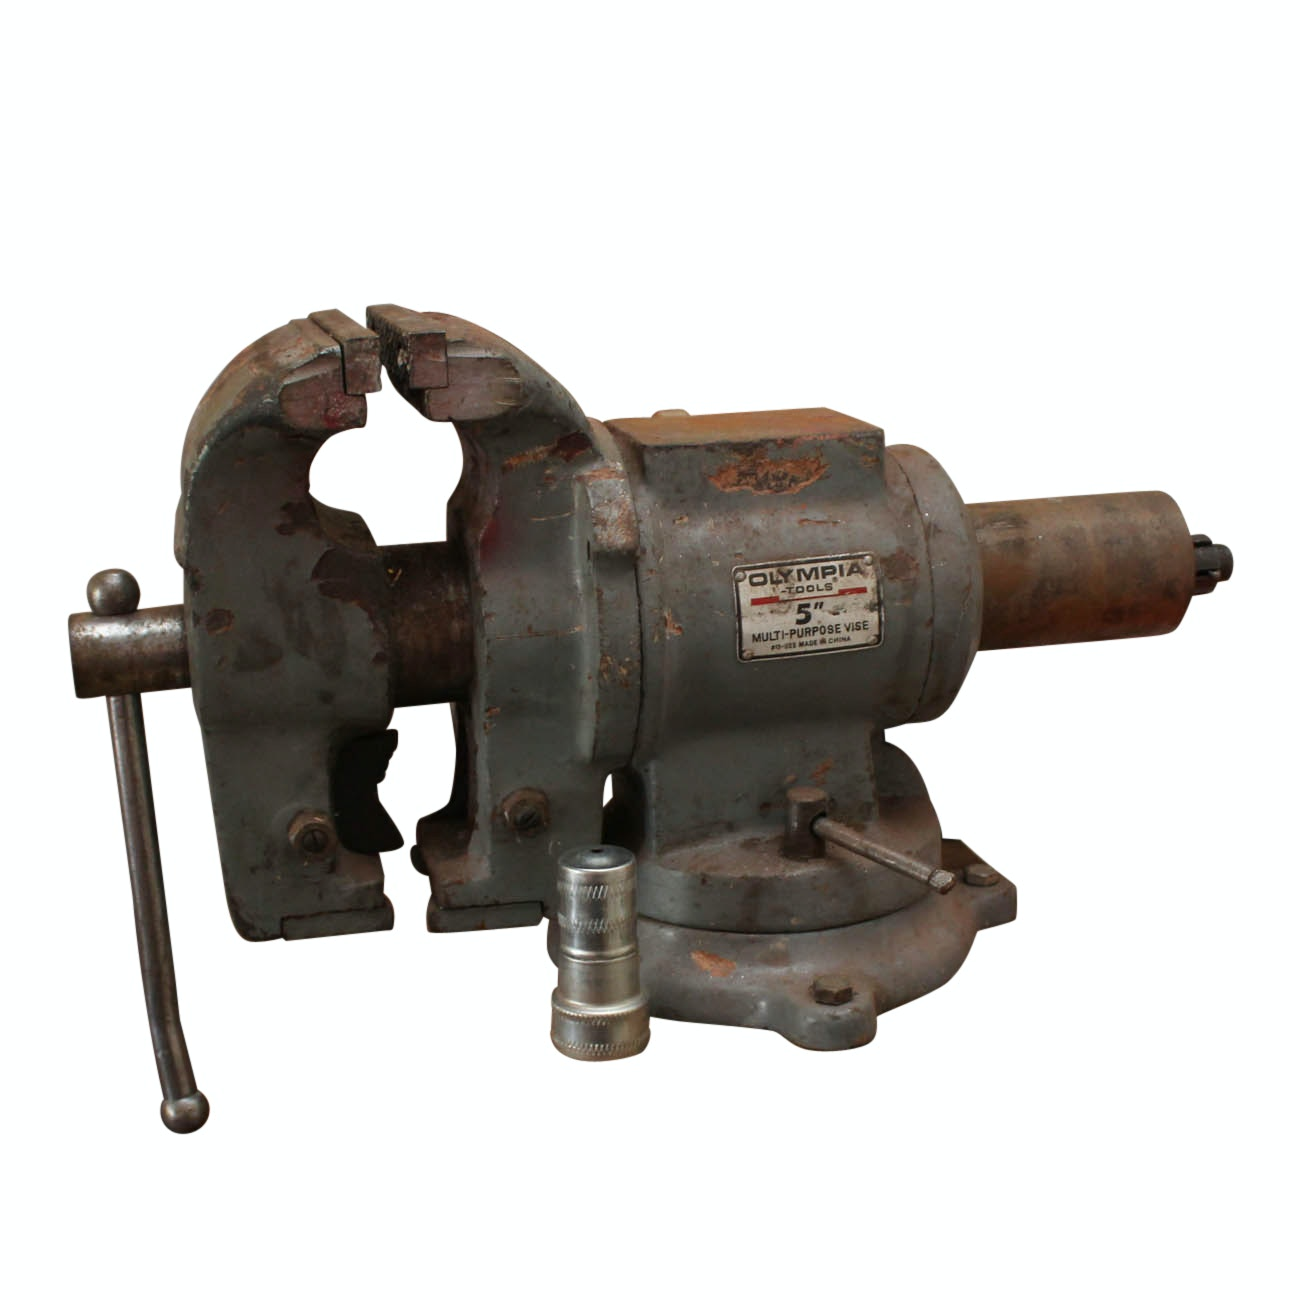 Olympia Multi-Purpose Vise